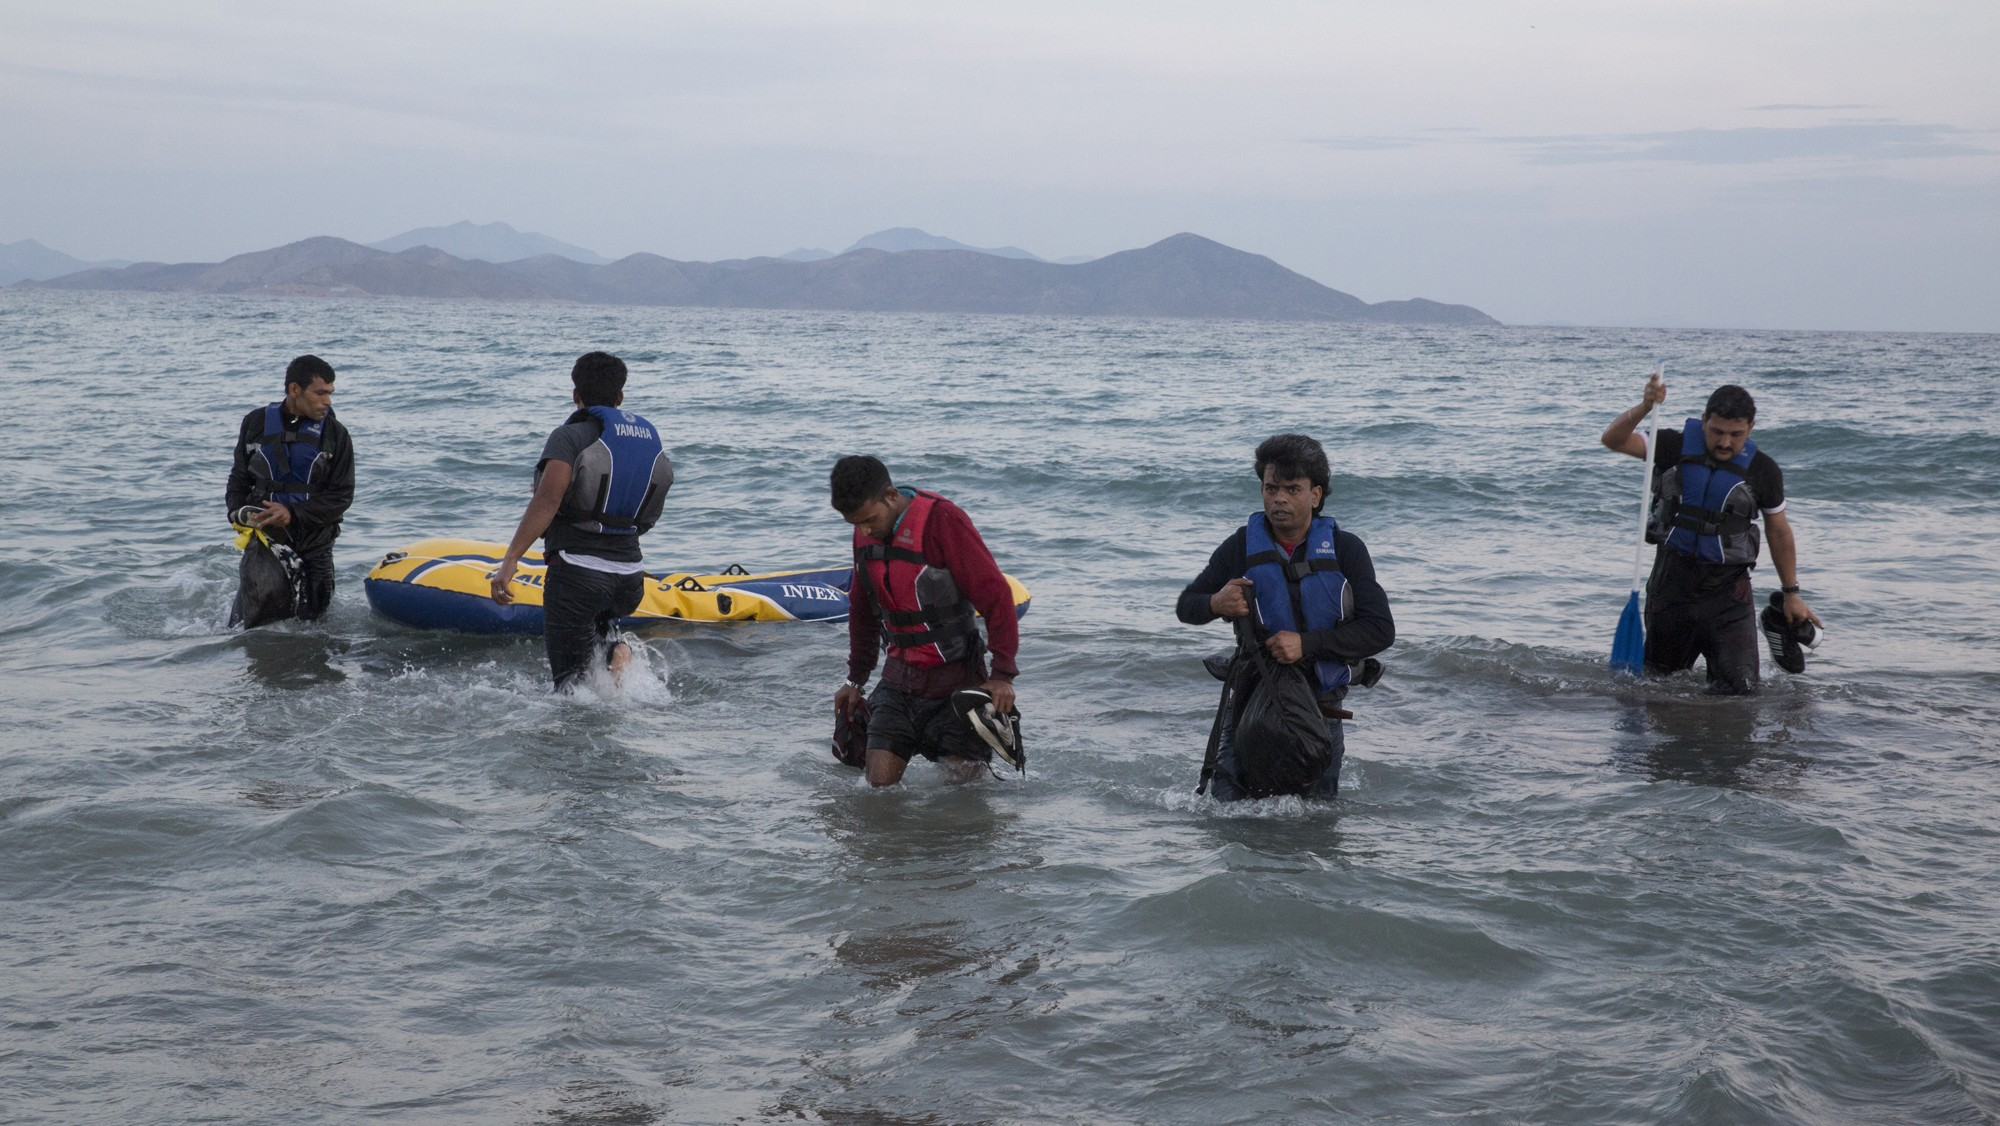 Last Resort: Witnessing the Migrant Crisis on Kos Island, Europe's New Frontier